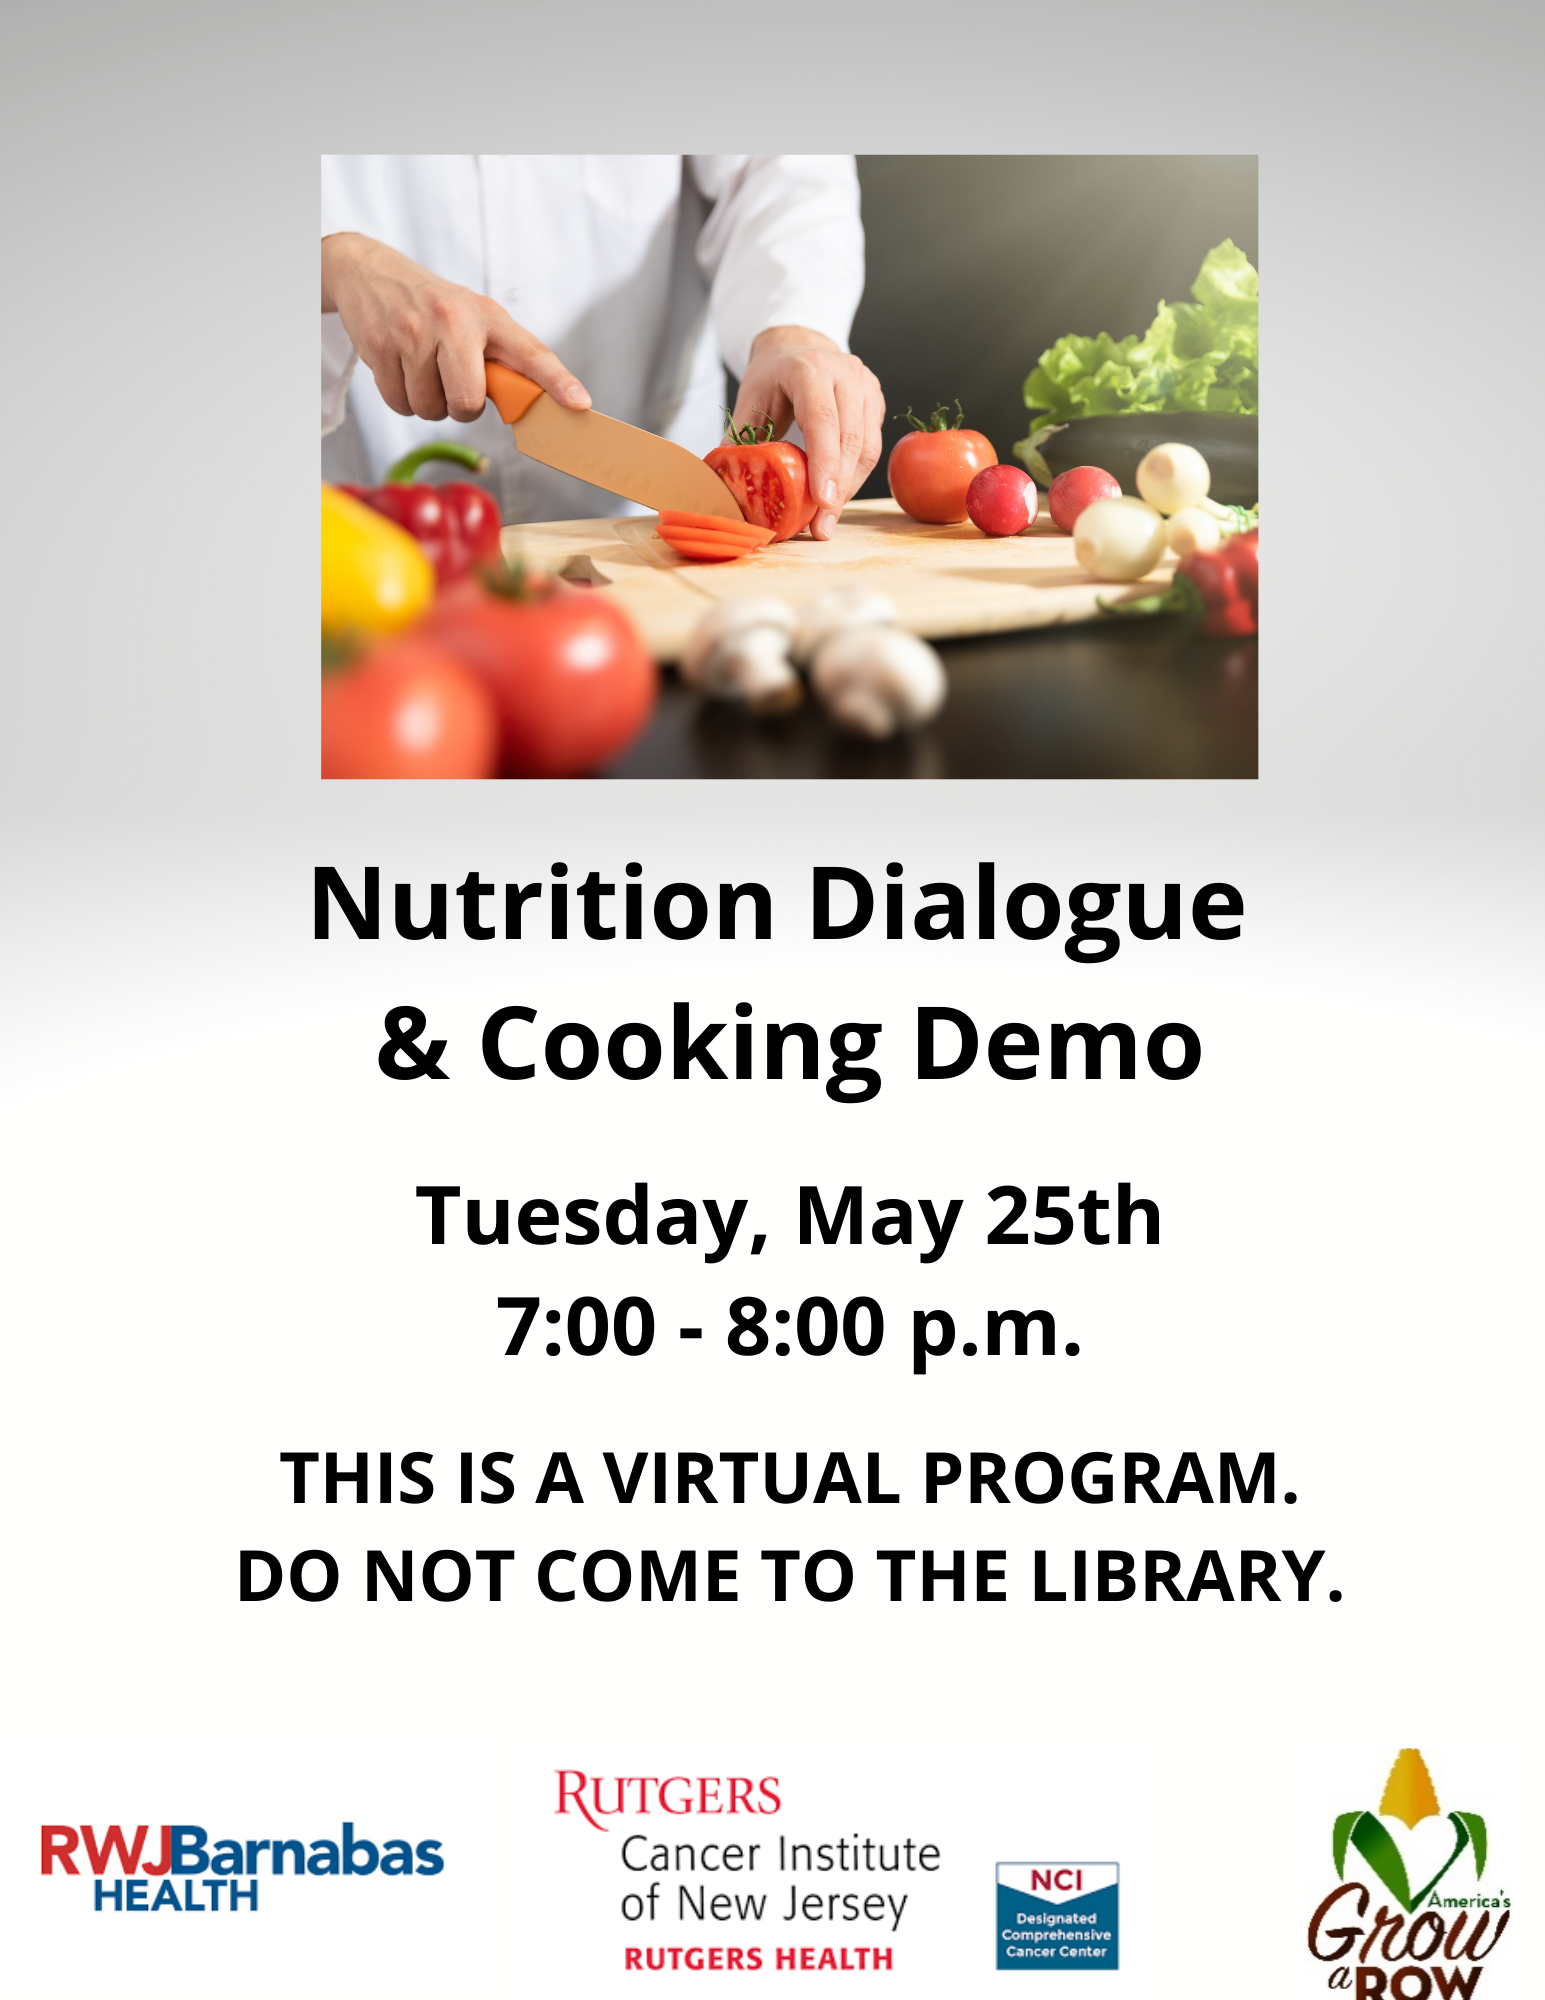 Nutrition Dialogue & Cooking Demo